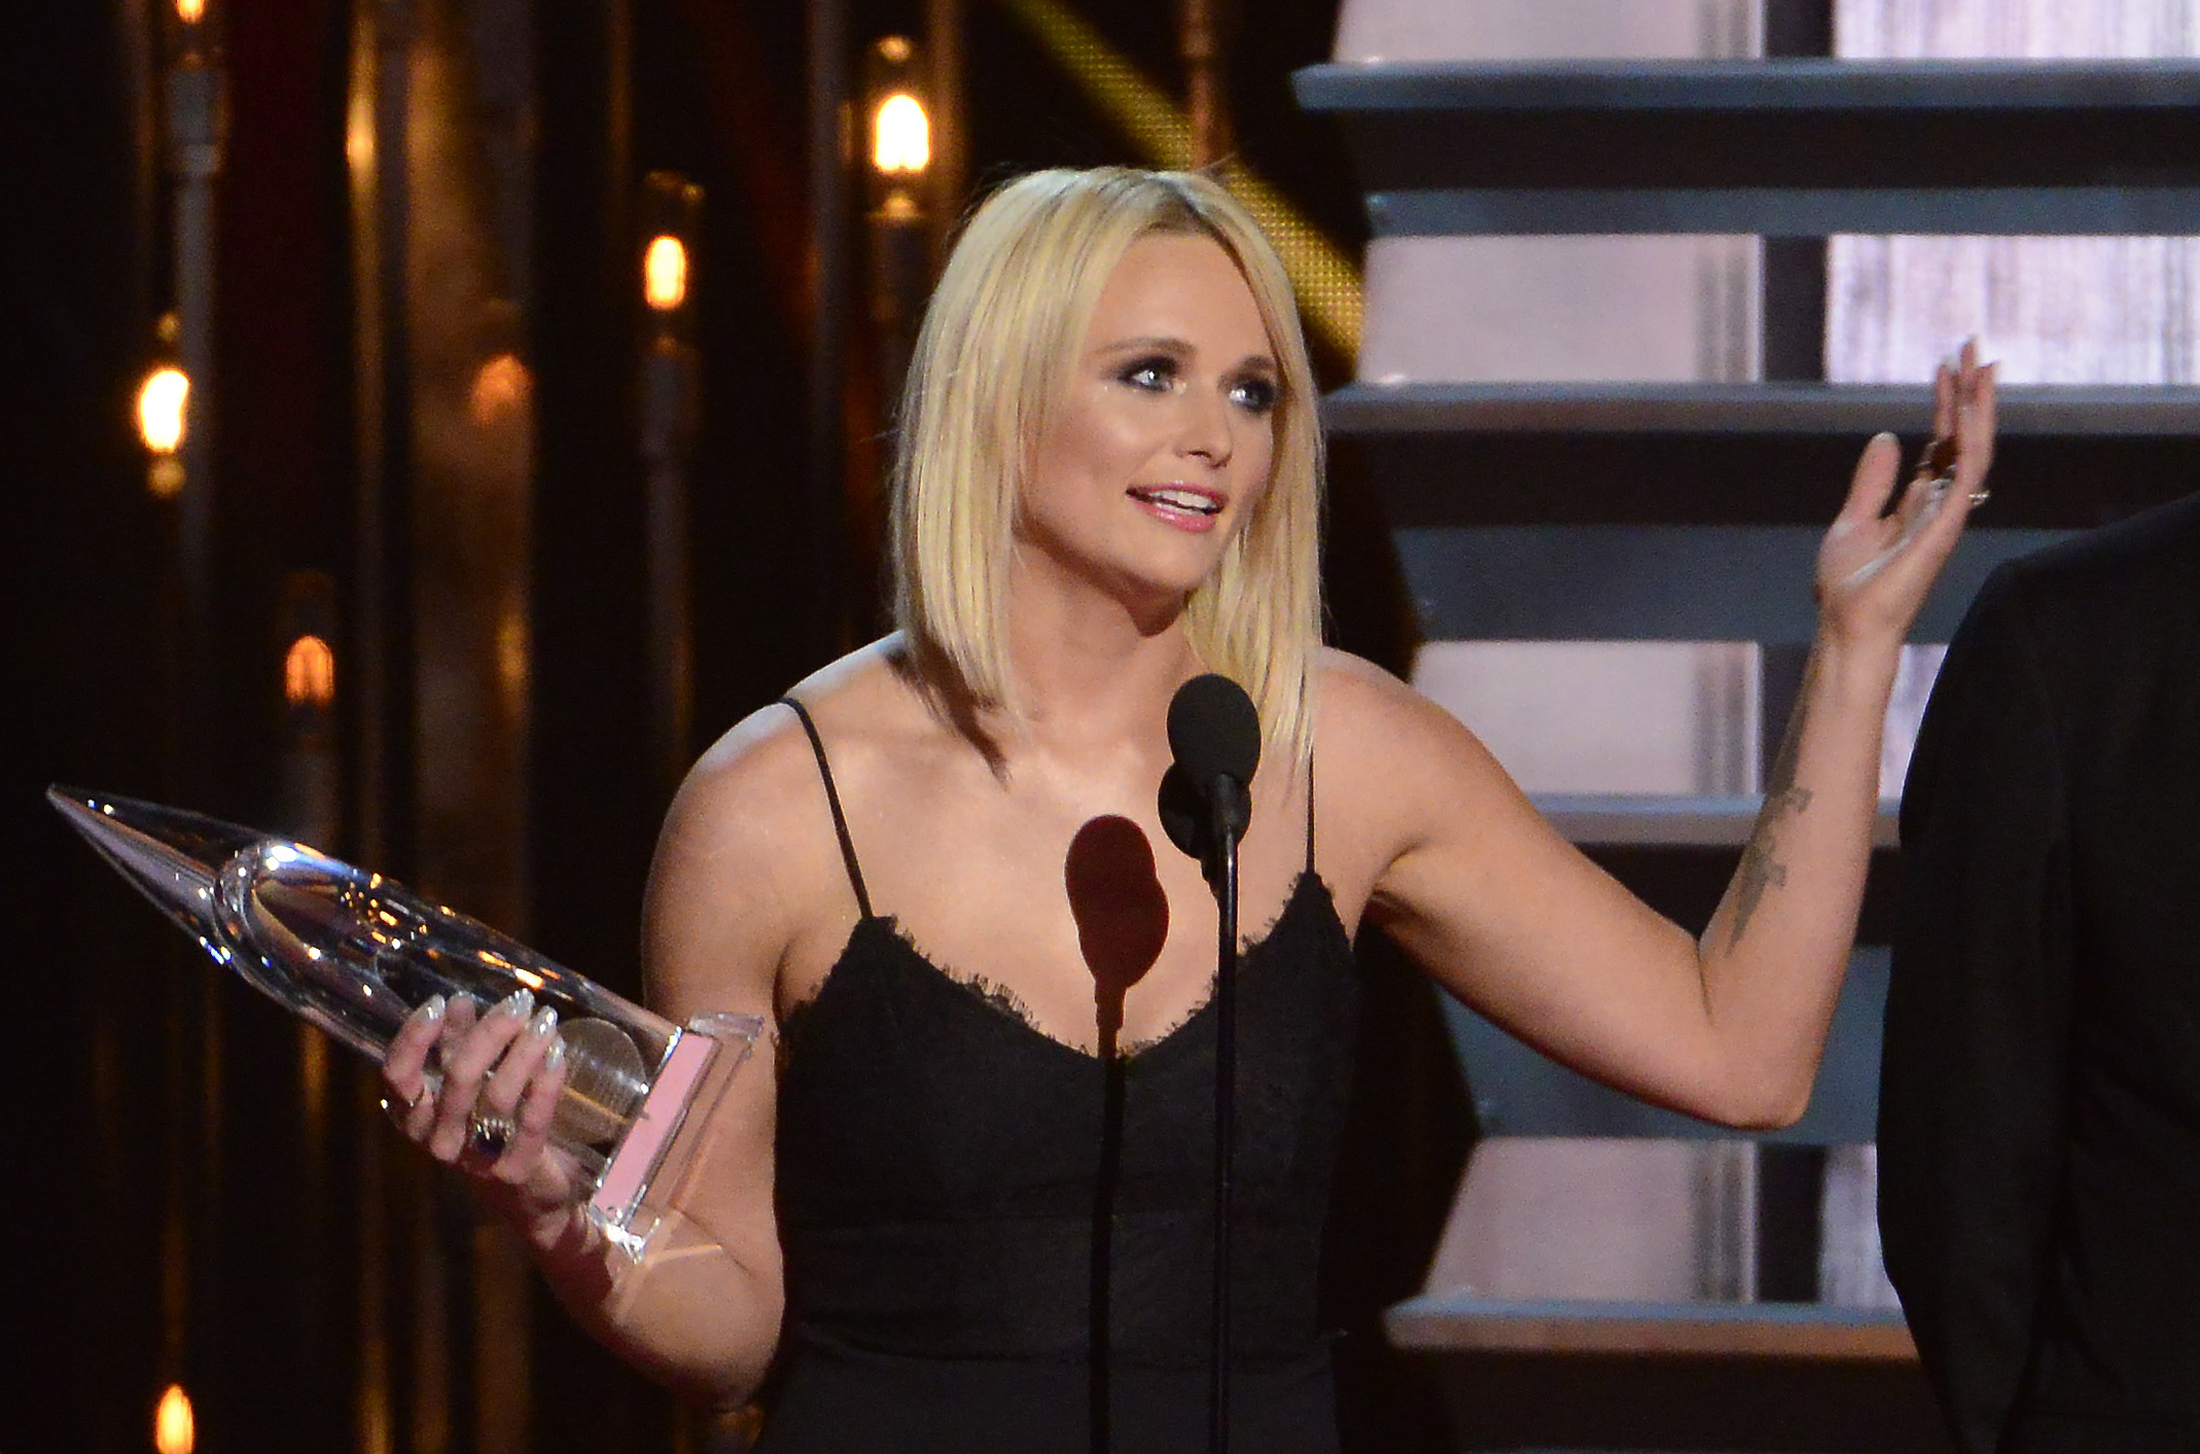 Singer Miranda Lambert accepts the Album of the Year Award for  Platinum  during the 48th Country Music Association Awards in Nashville, Tennessee November 5, 2014.